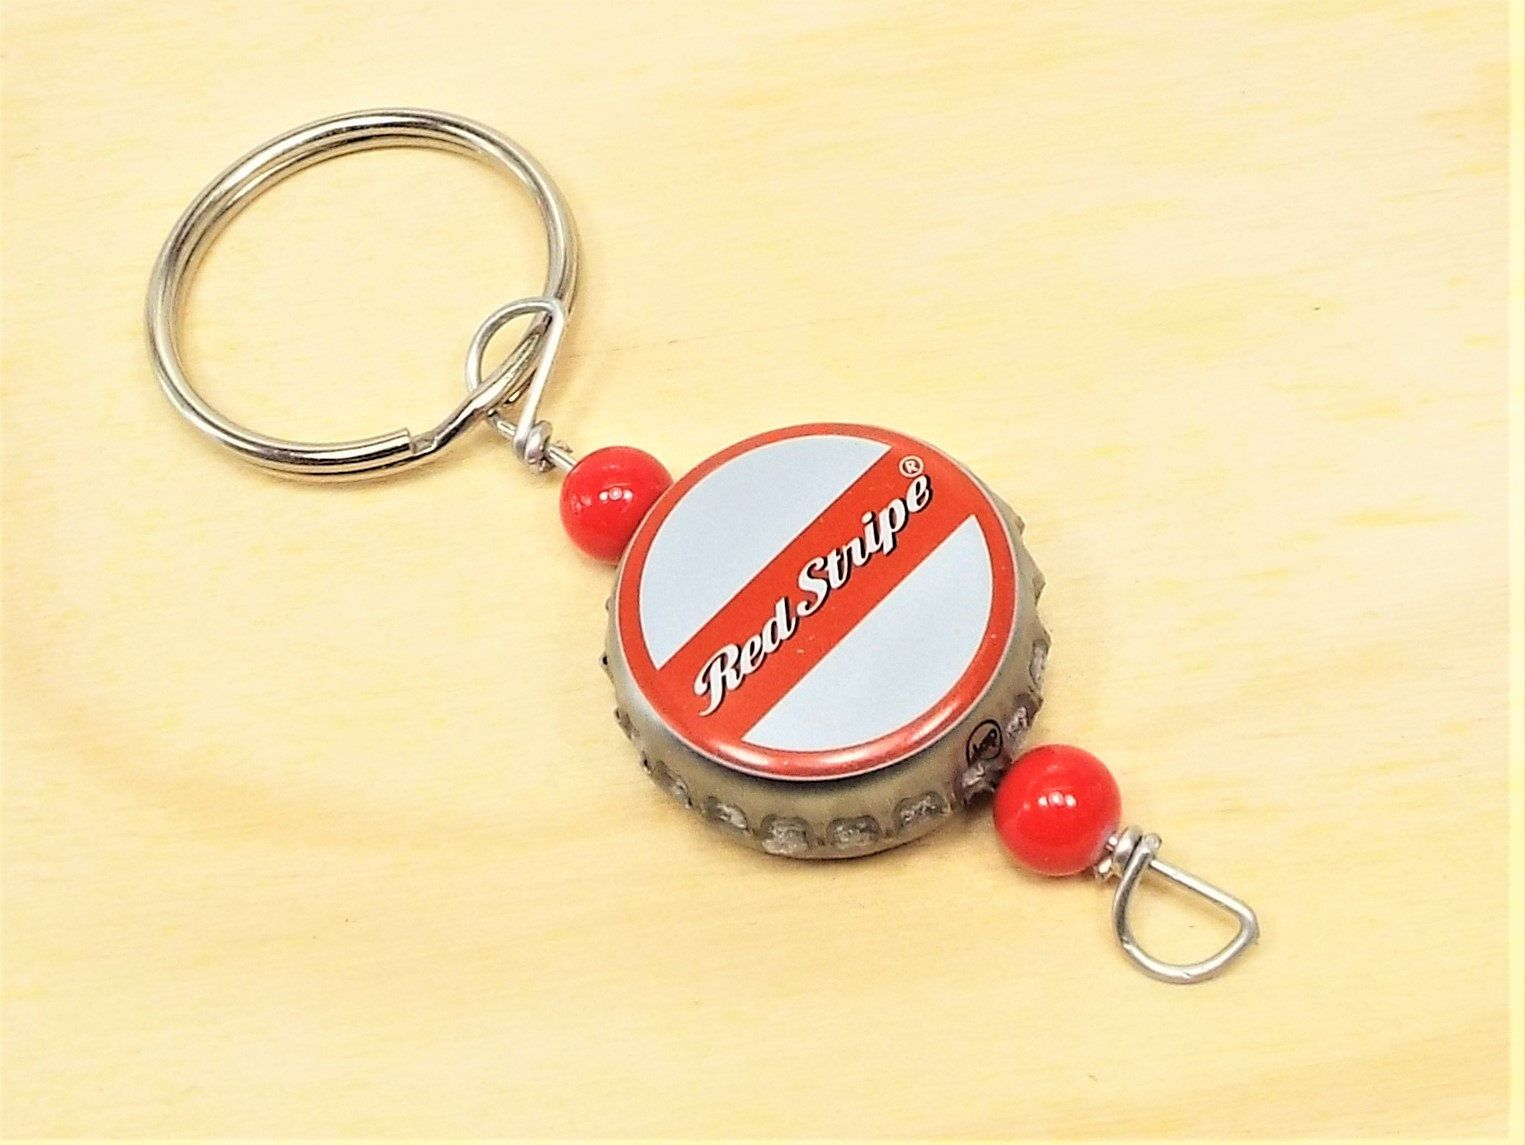 Tv picture character toys toys hobbies transformers autobot key chain phone charm strap optimus prime chibi keyring